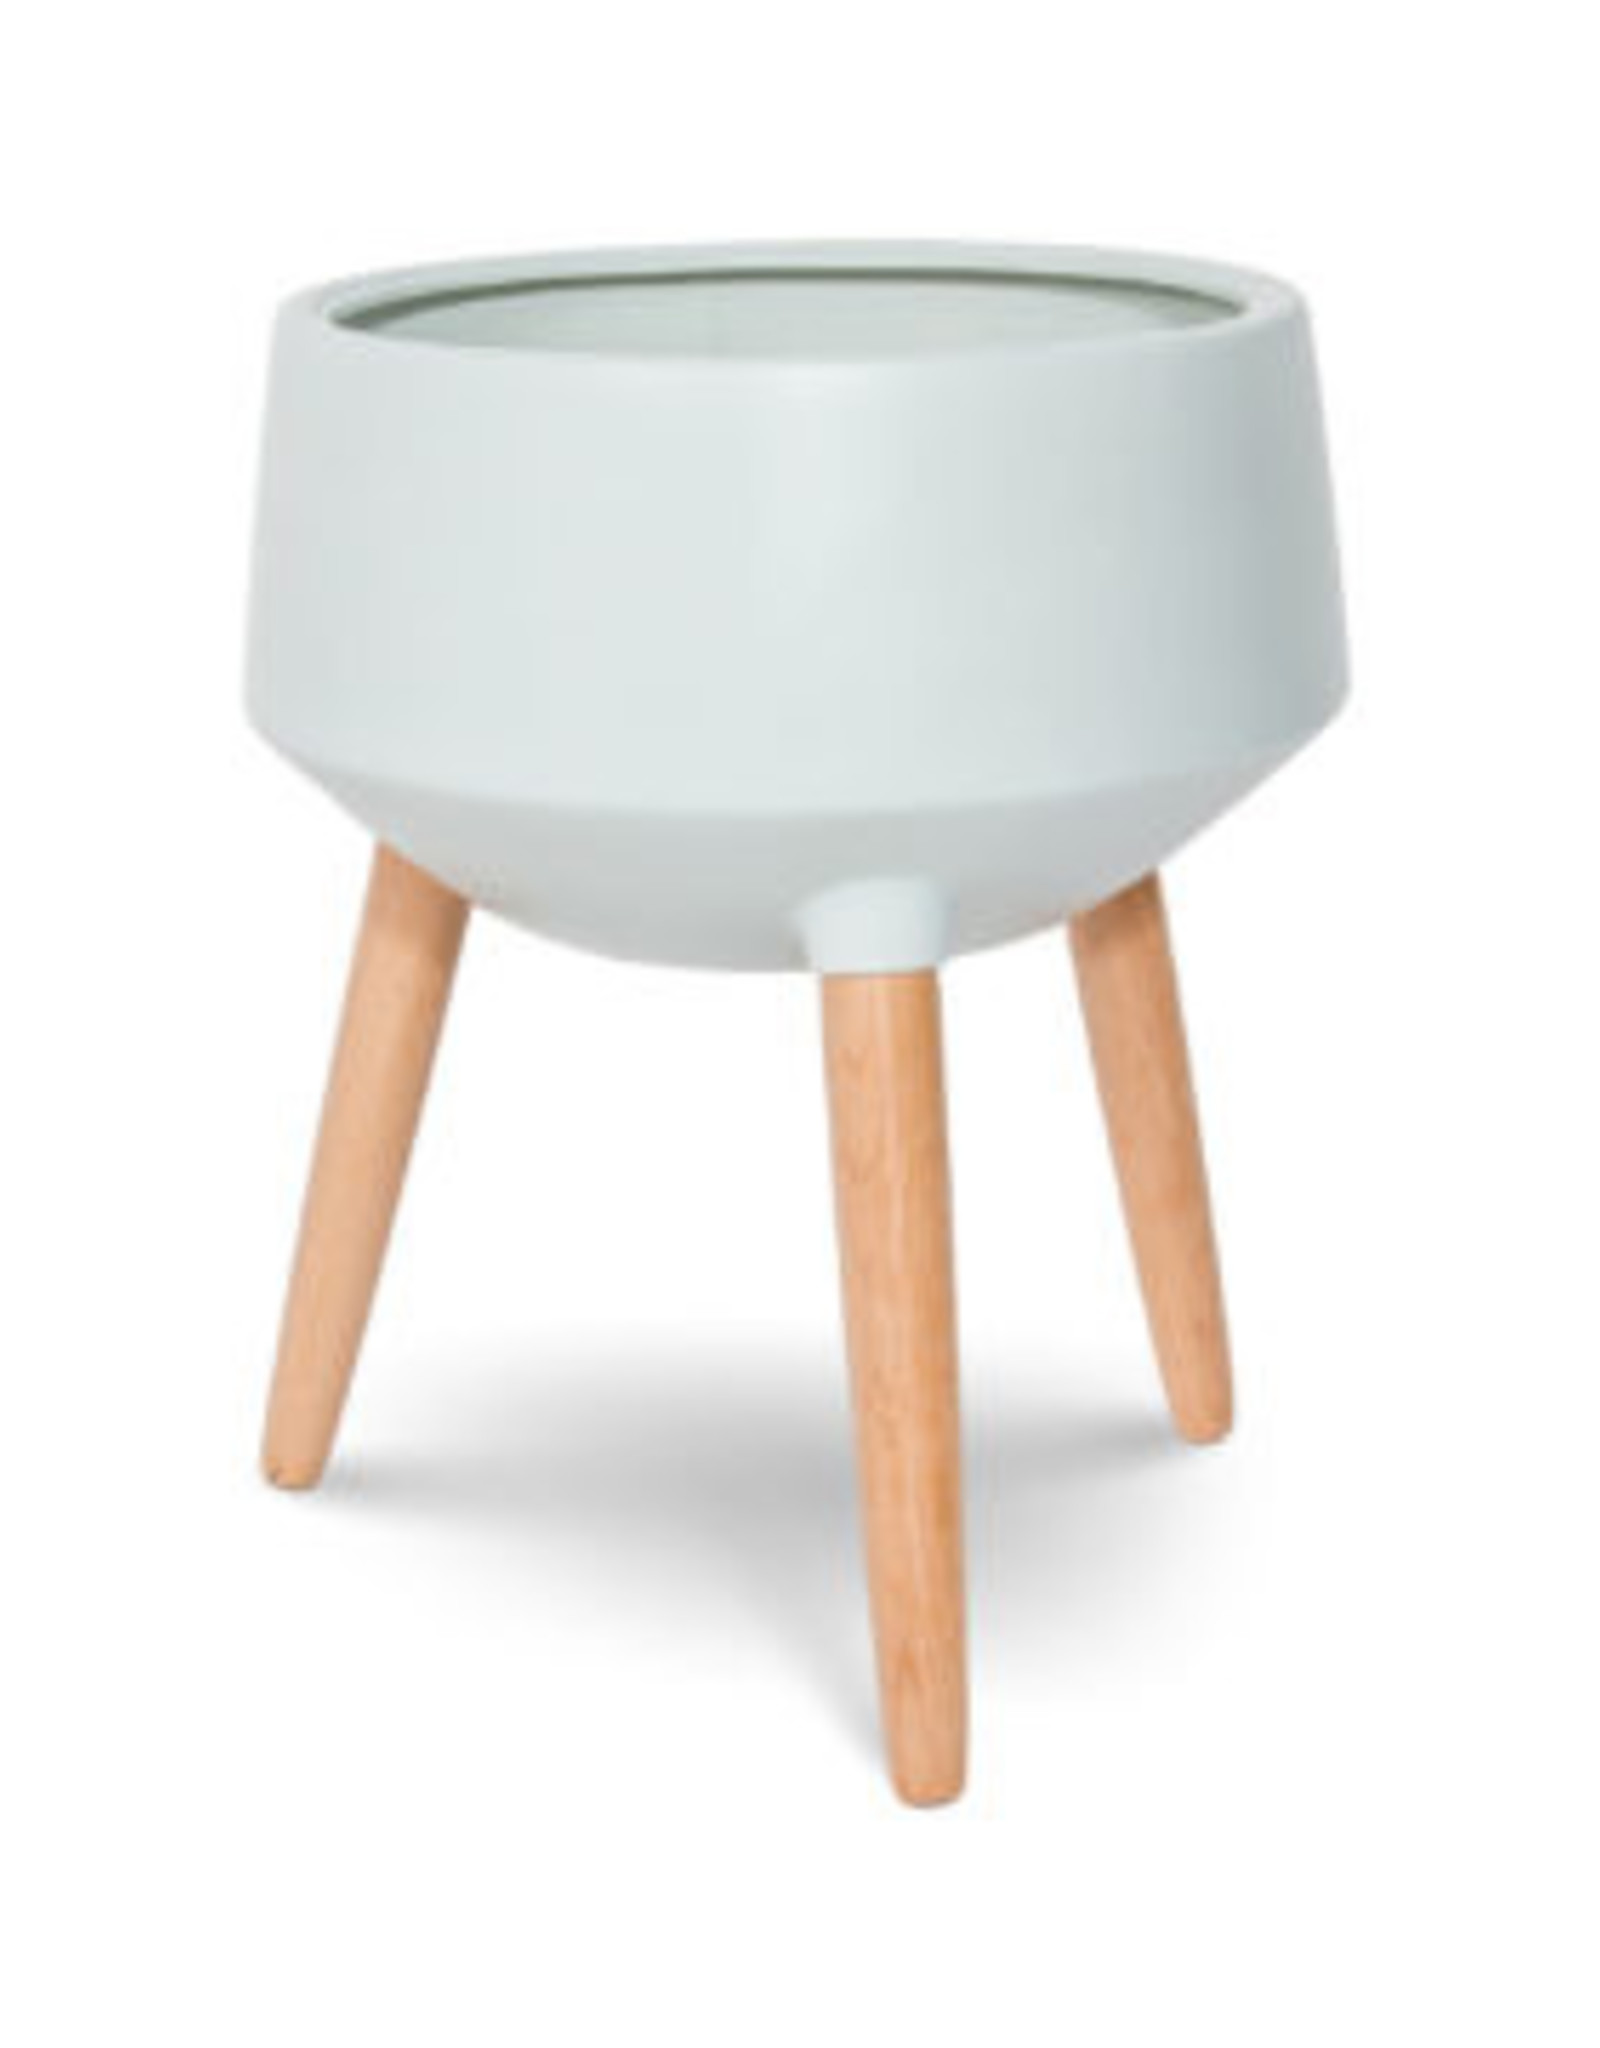 Style In Form Planter SIF Circa Mood Neo Mint  AGW-013